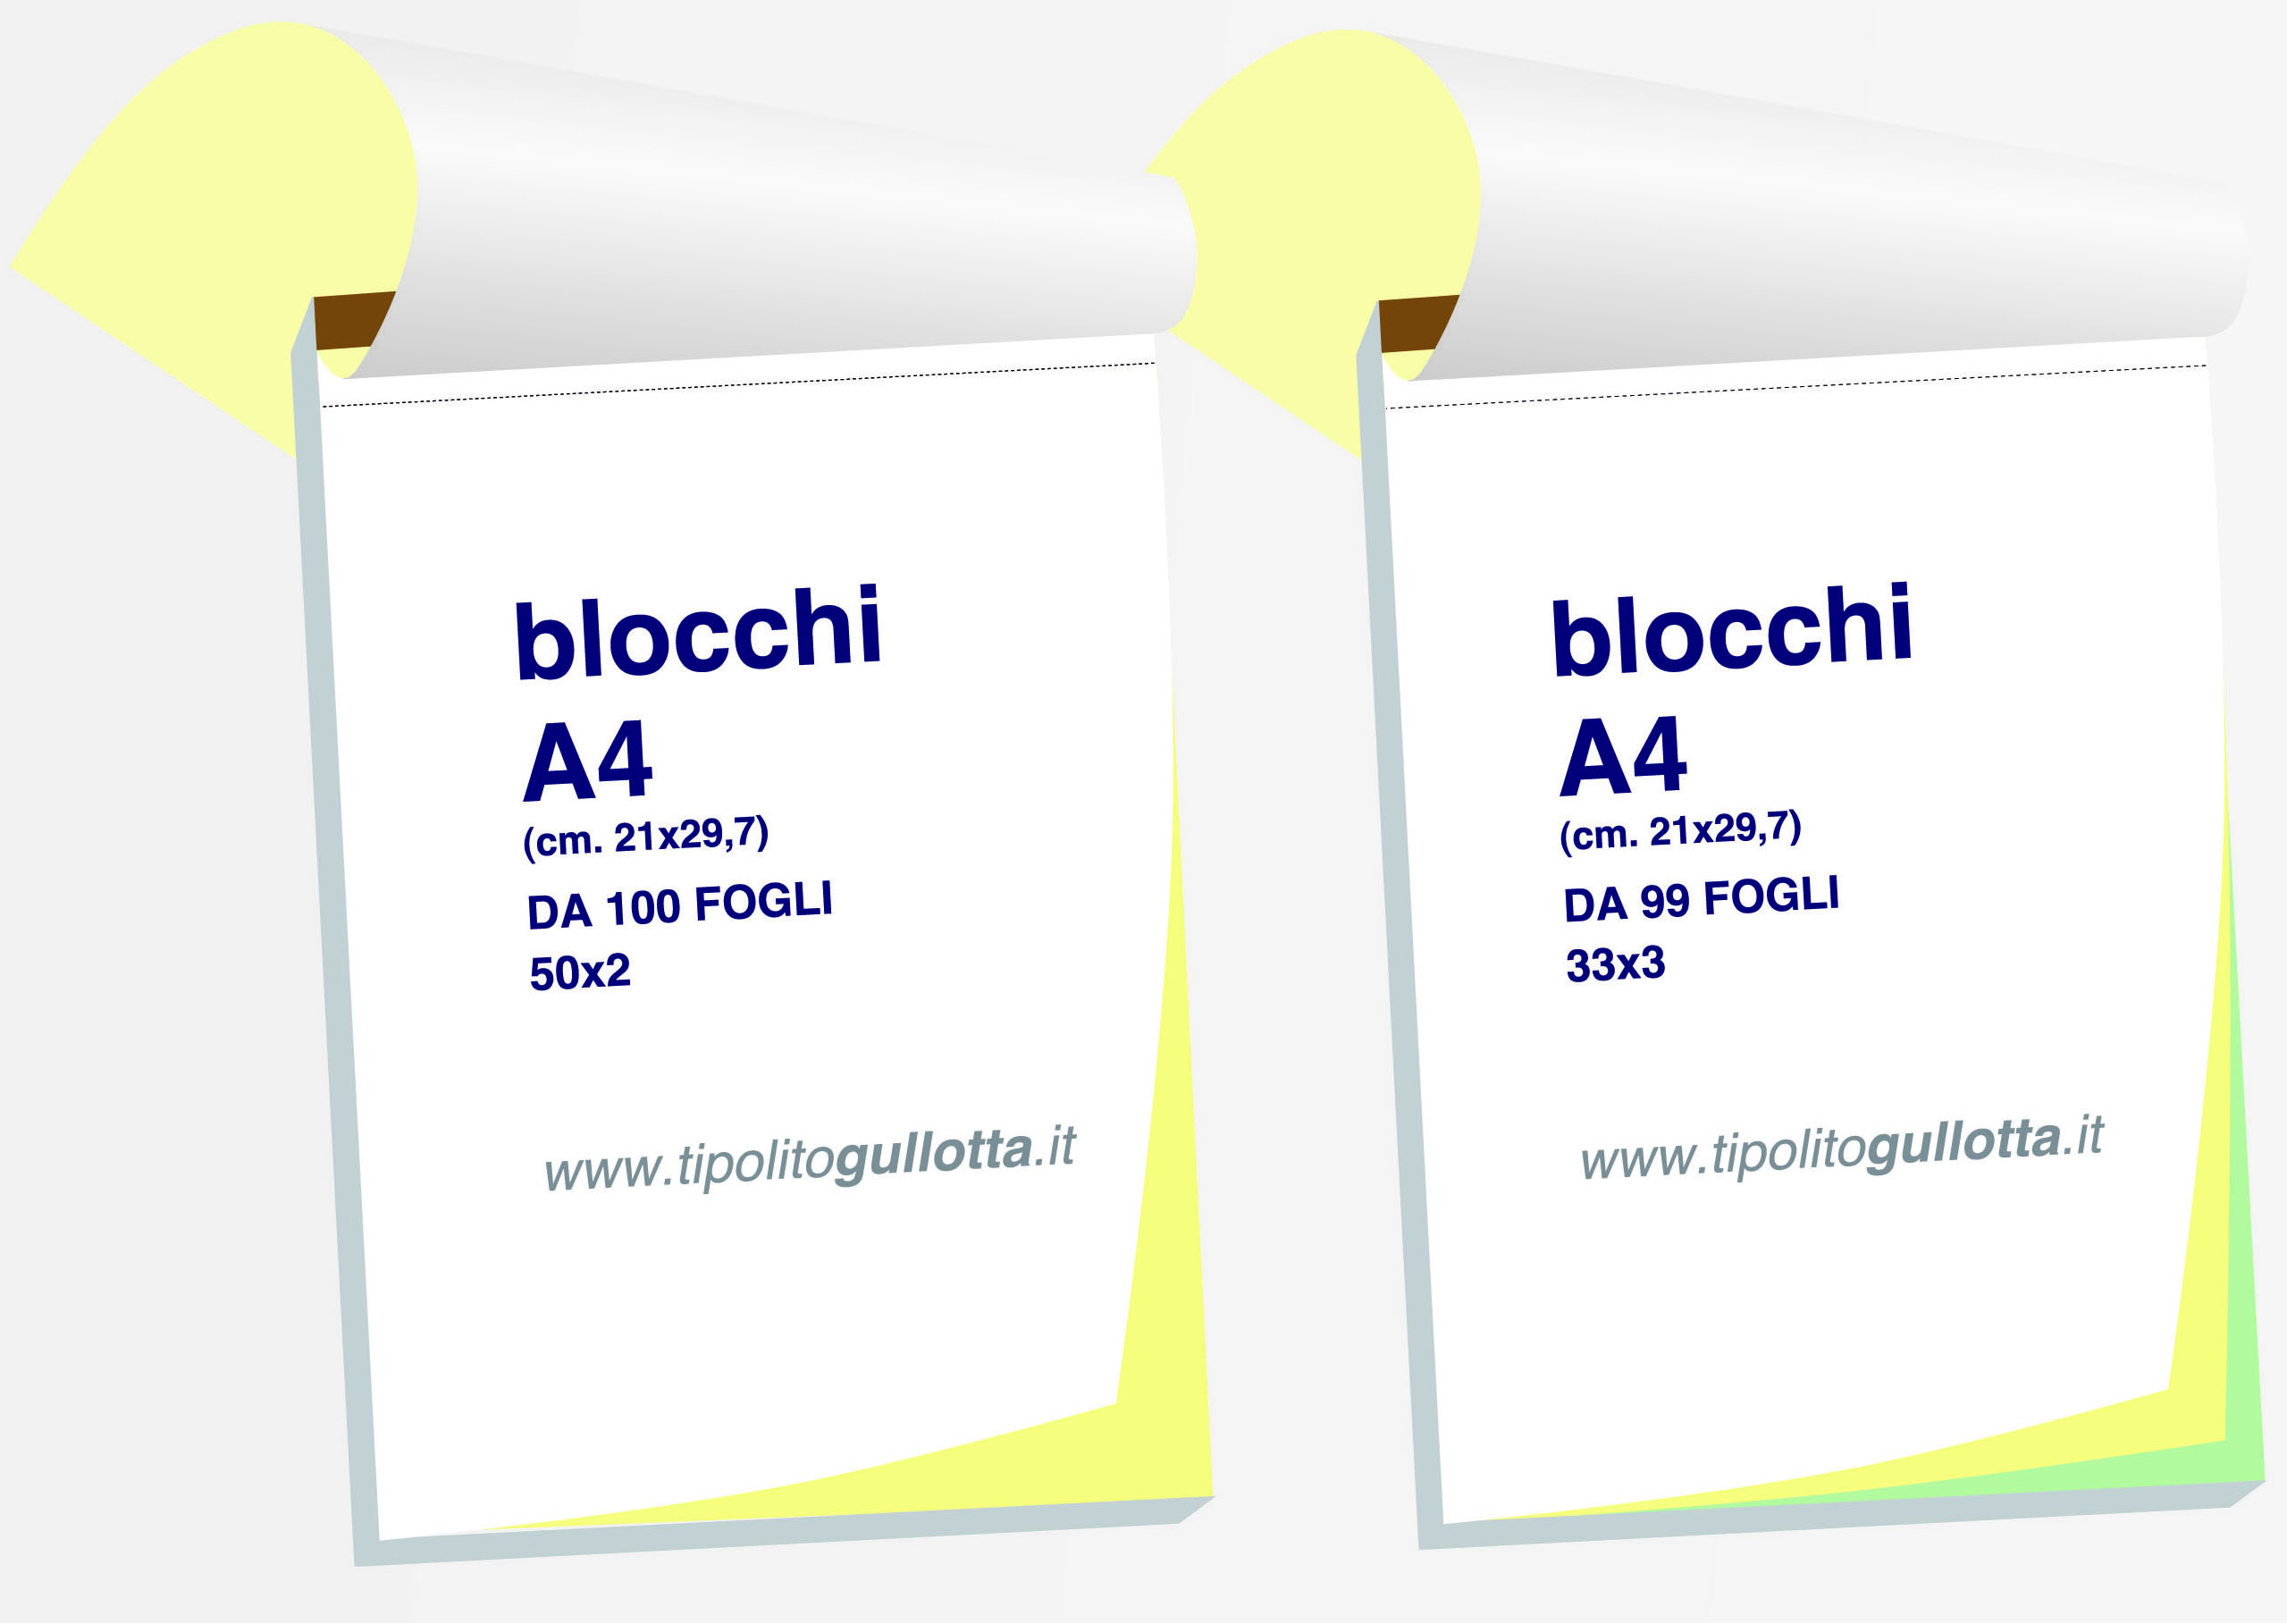 blocchi_a4_copia.jpg